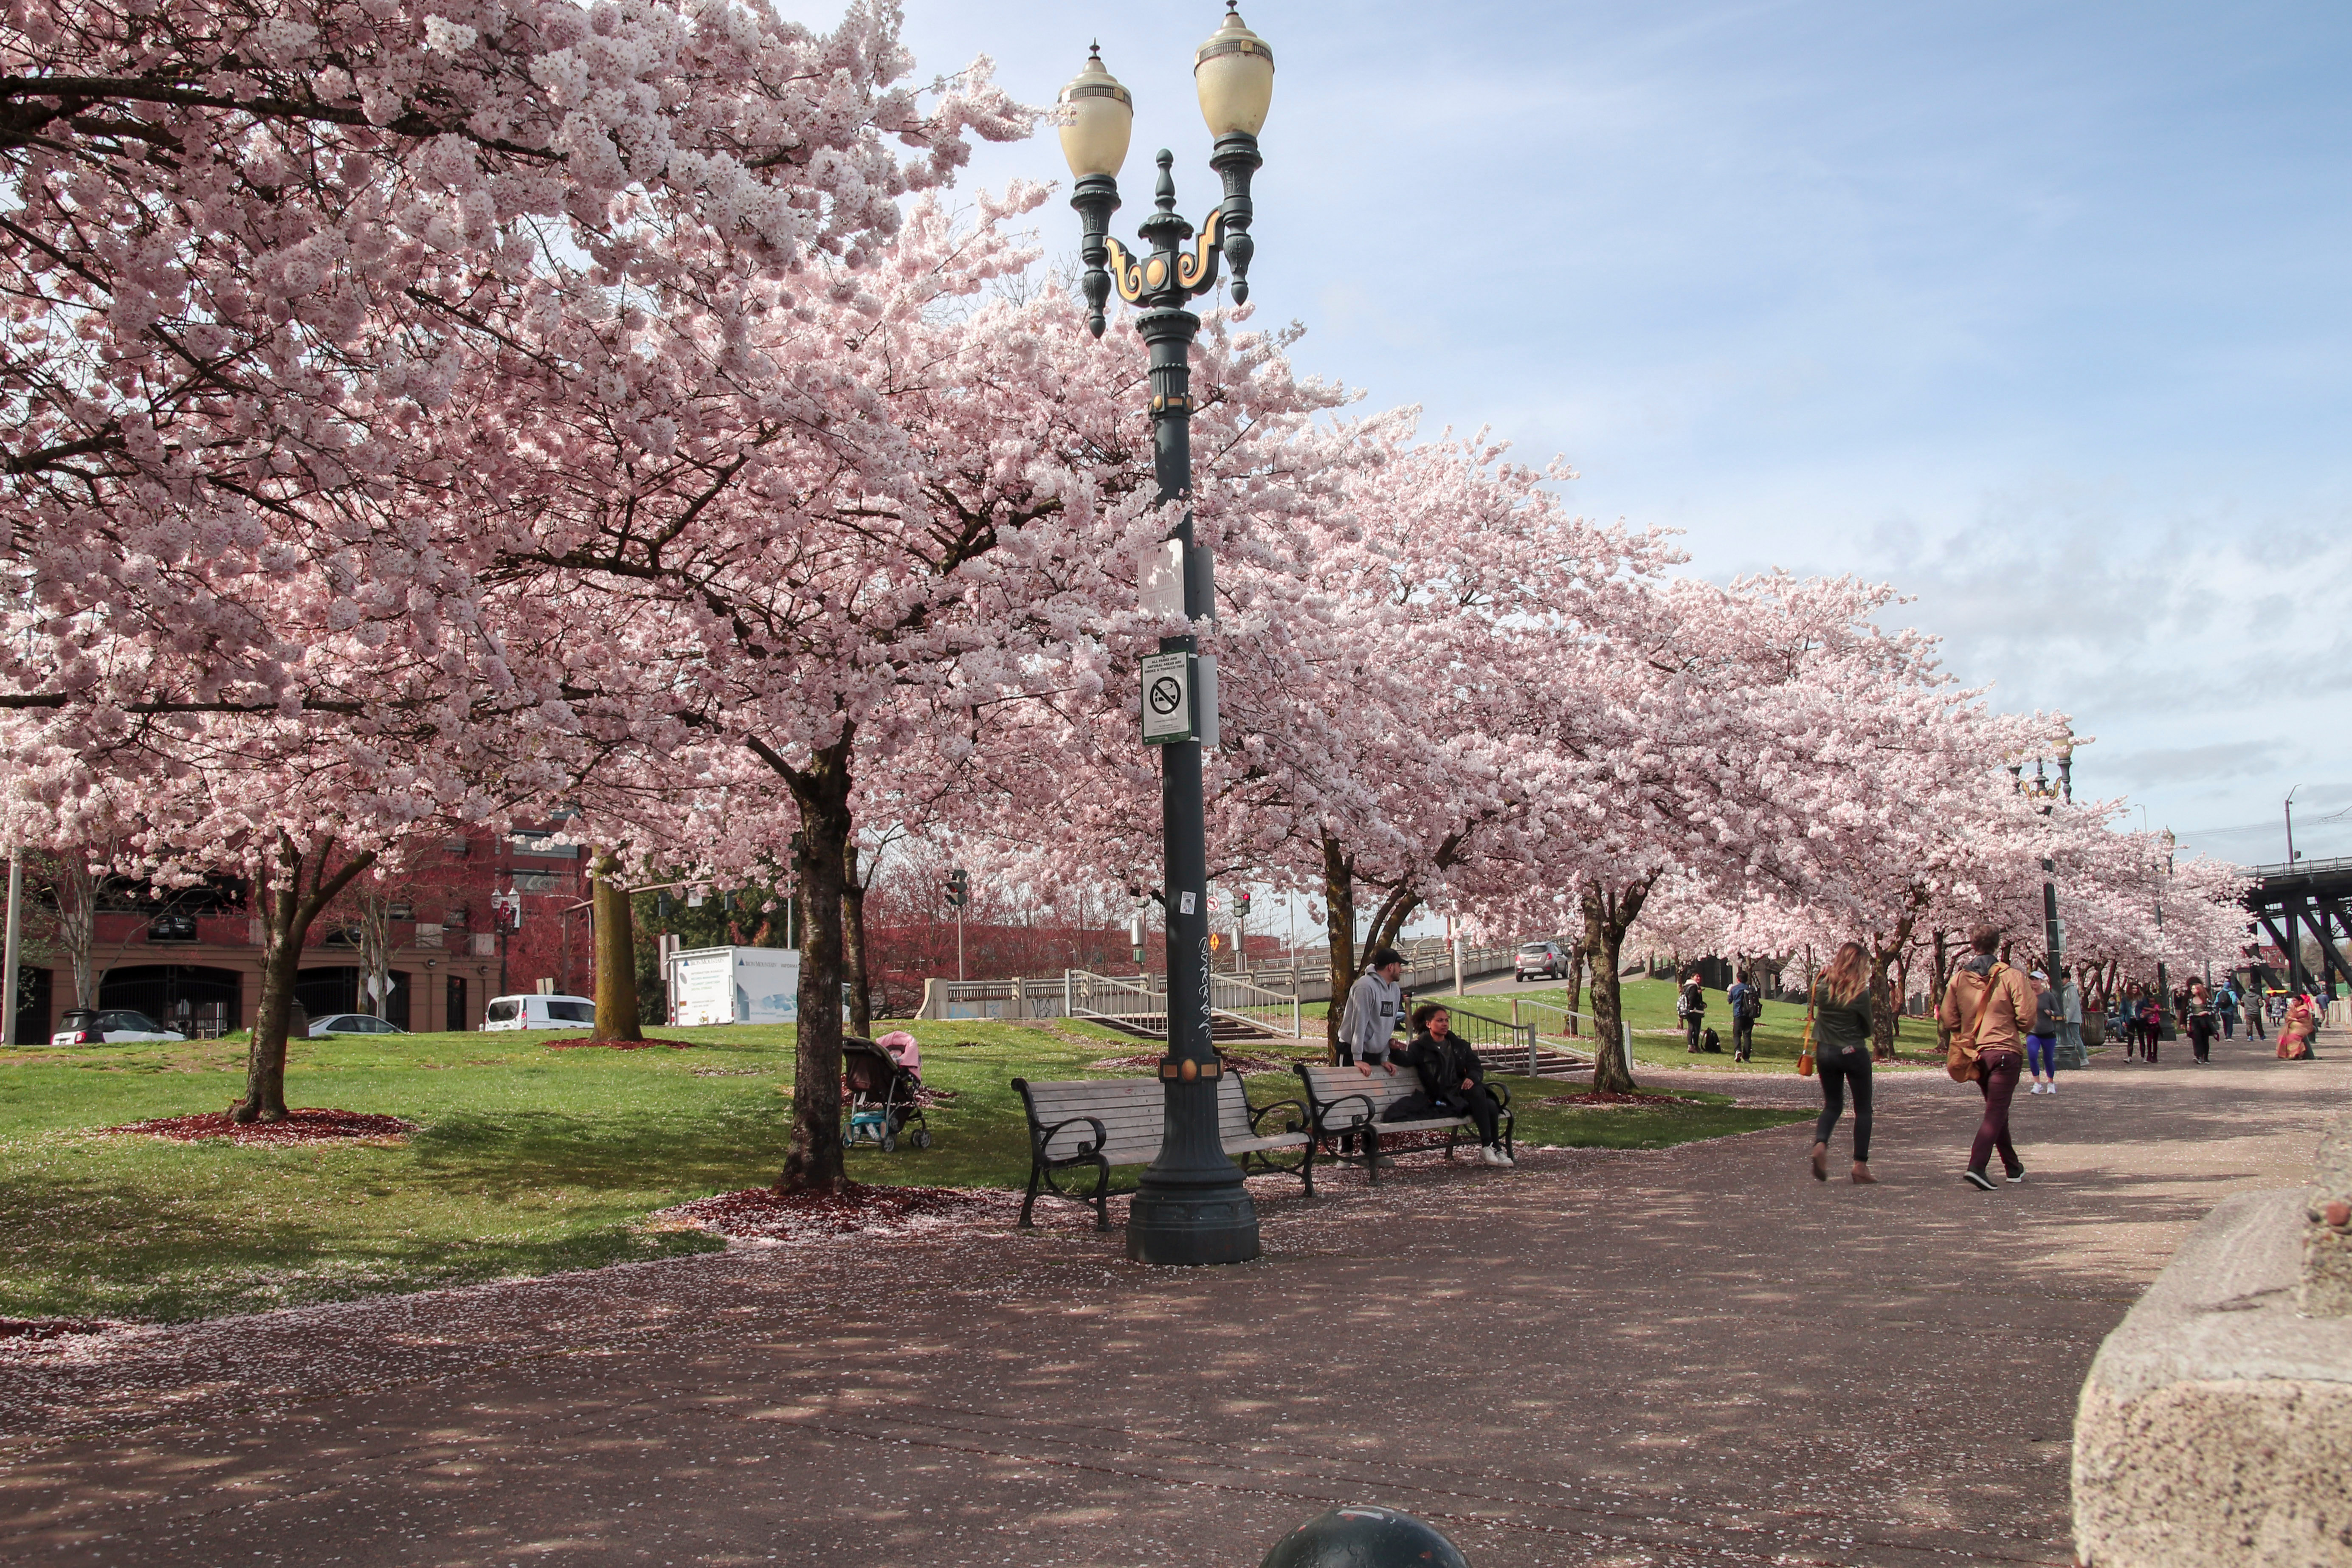 cherry-blossoms-in-Portland.jpg?mtime=20200129110524#asset:107817